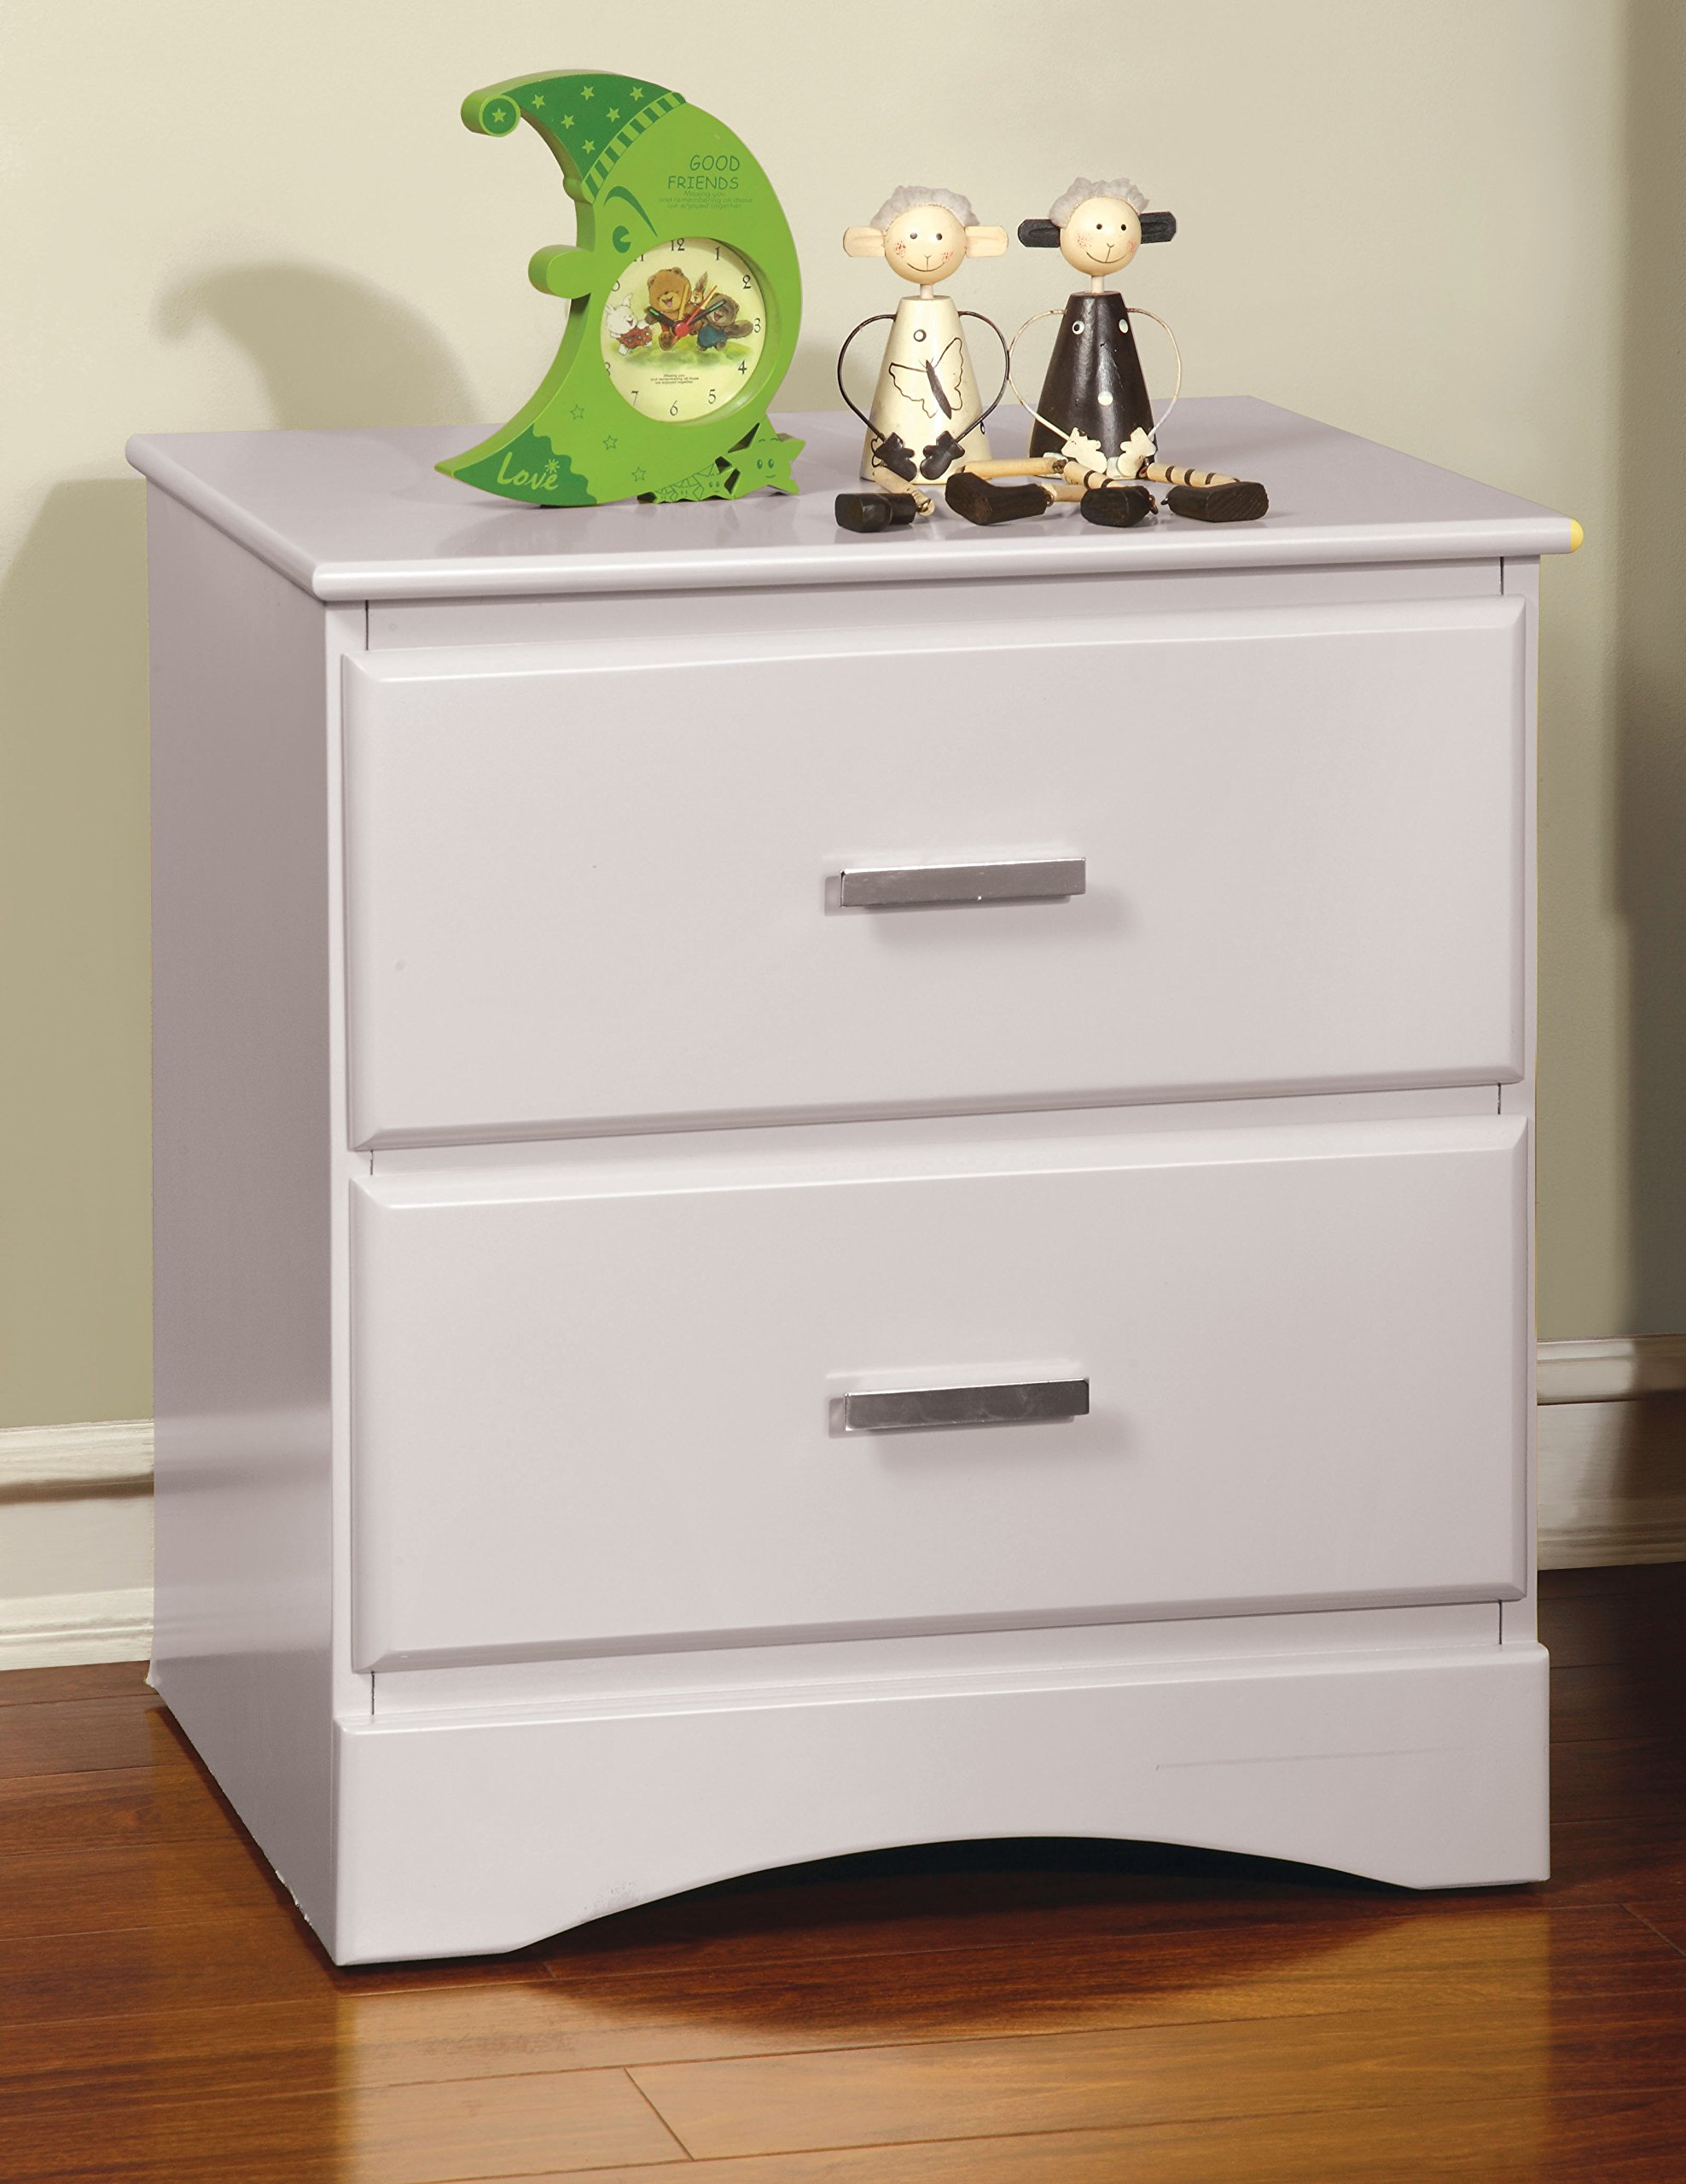 Furniture of America Kolora Youth Nightstand, White by HOMES: Inside + Out (Image #1)